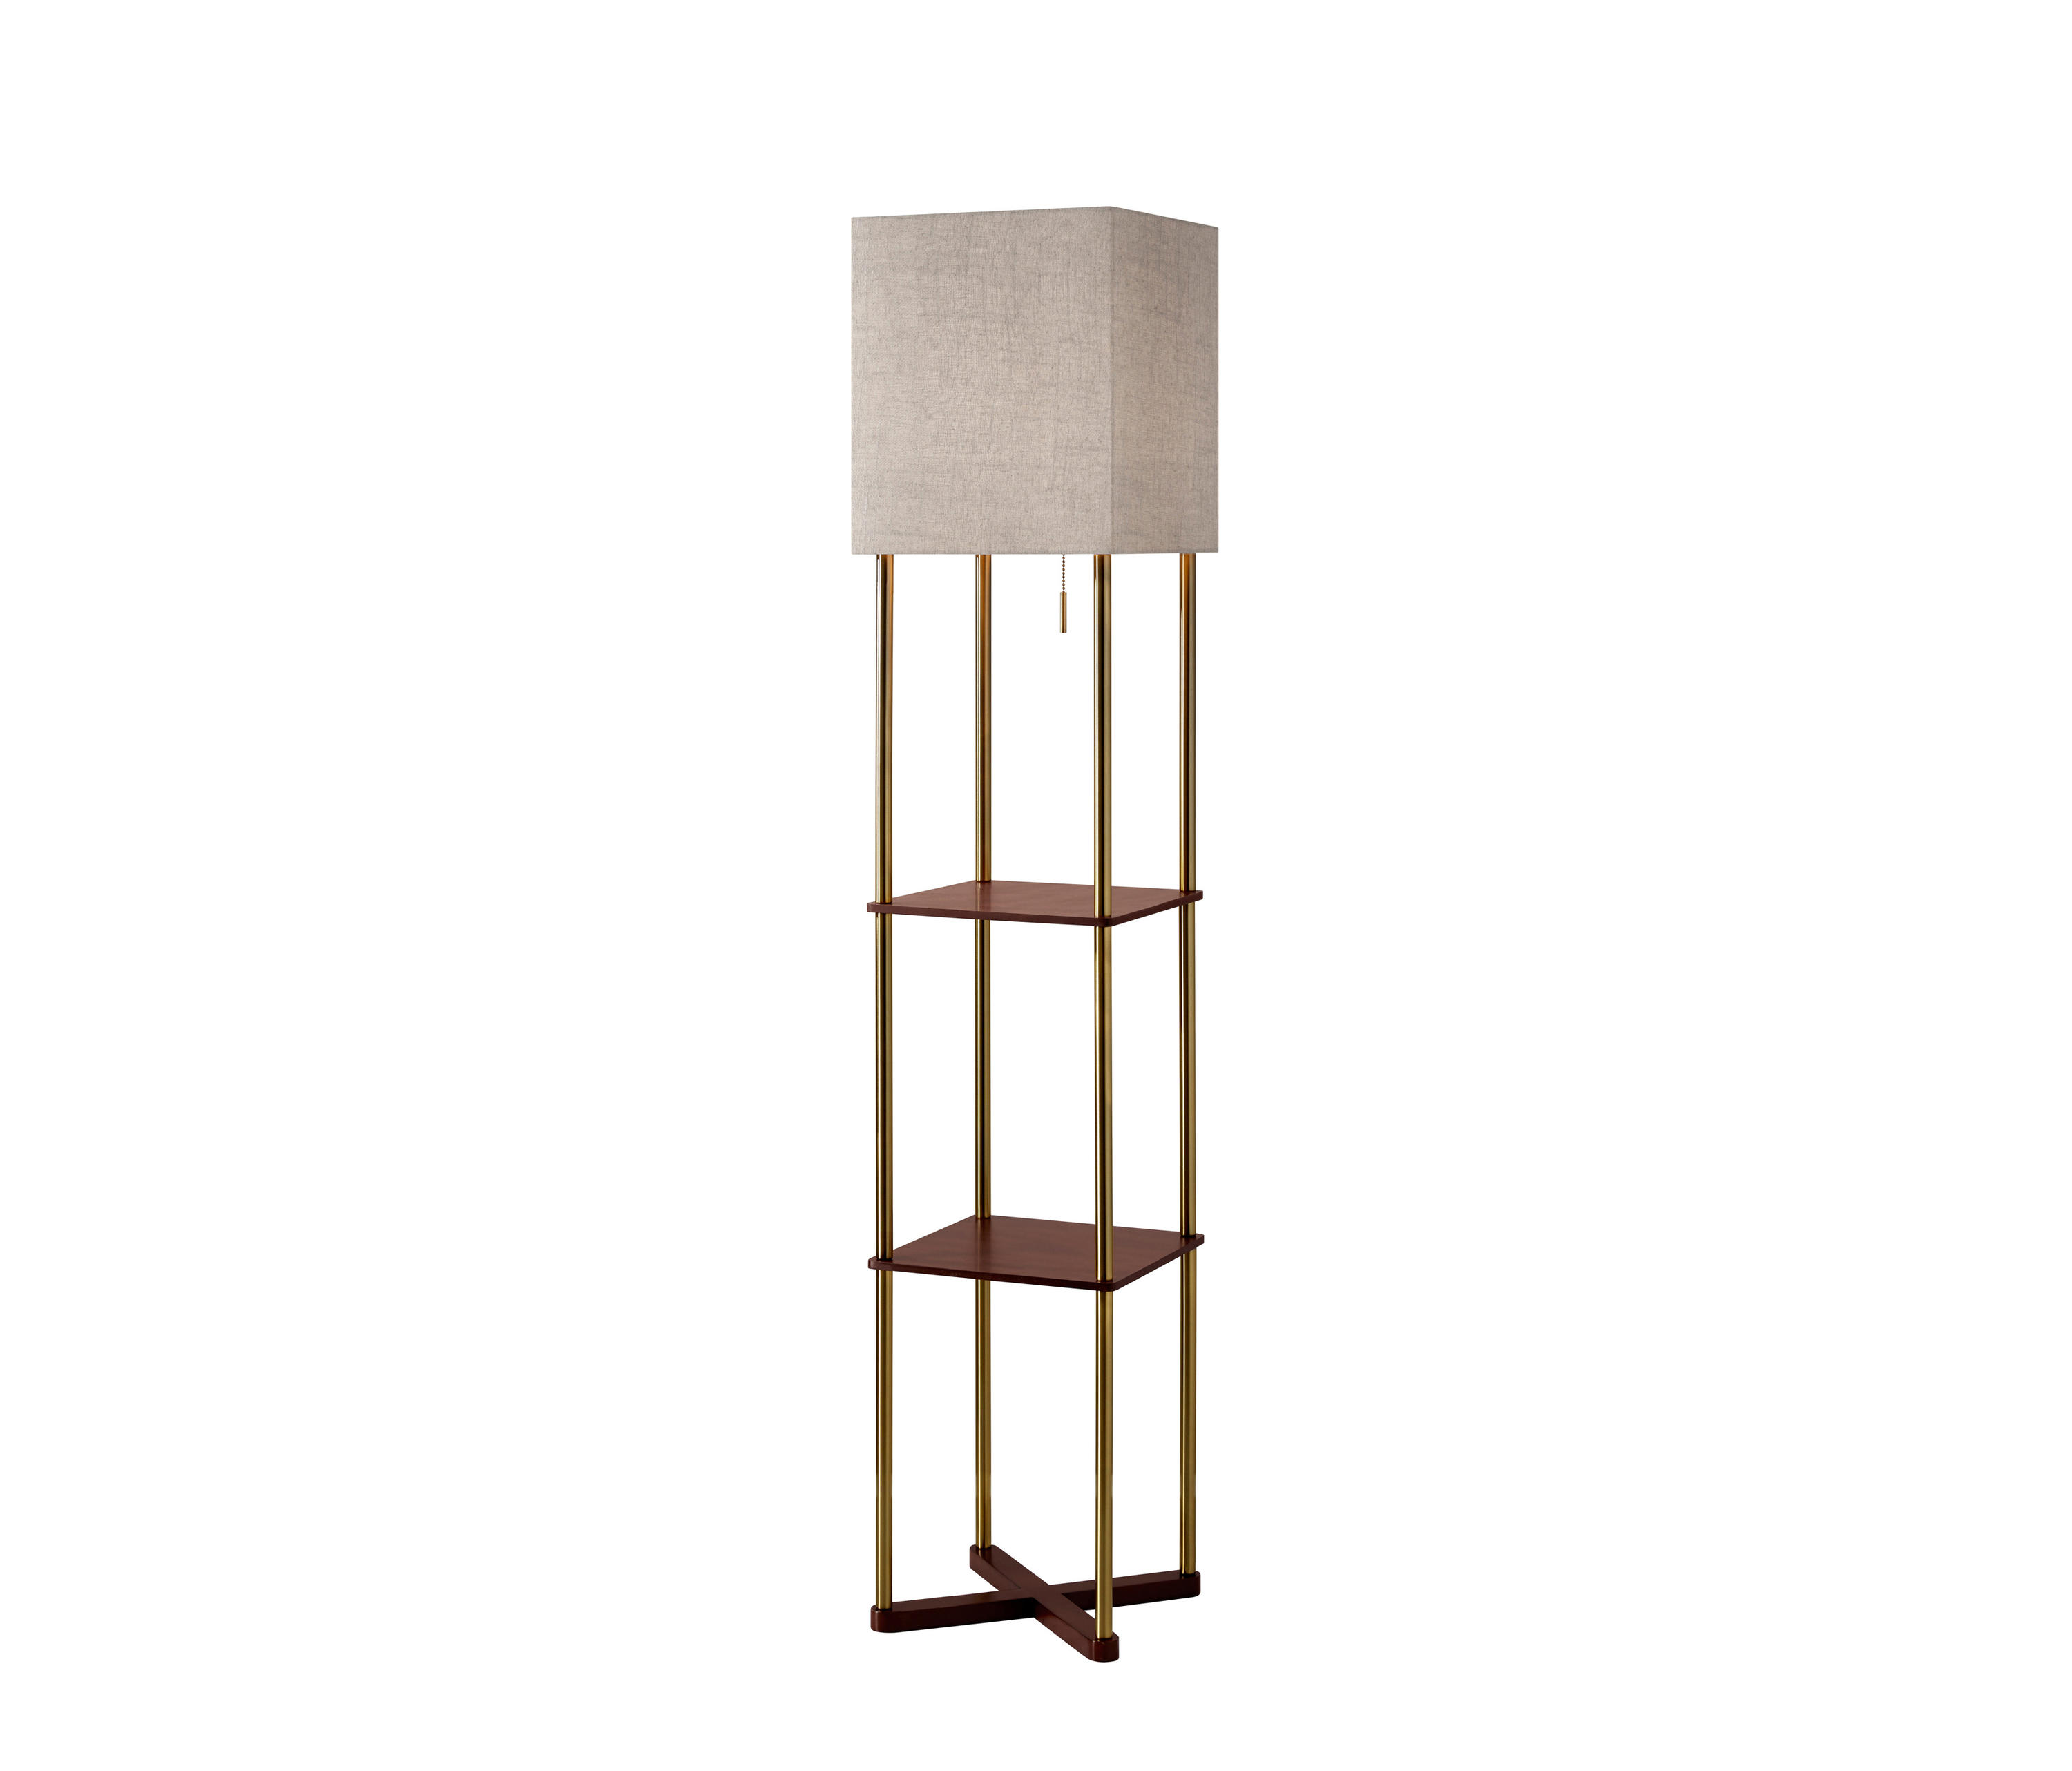 pin com drawer from adesso hayneedle lamp shelf black floor with parker